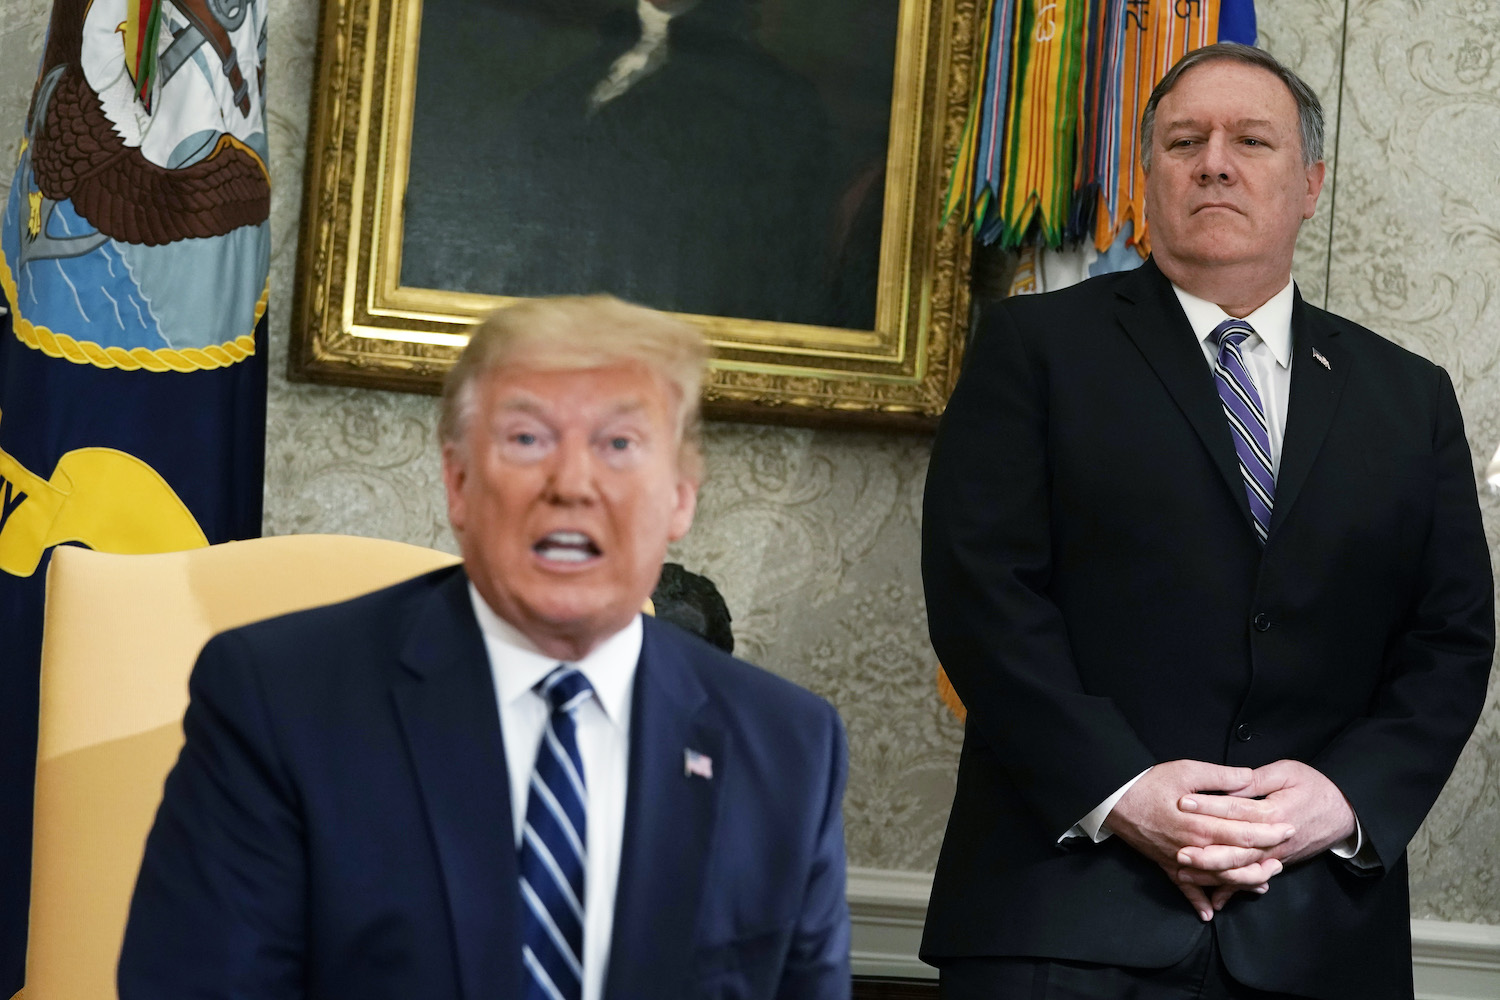 U.S. Secretary of State Mike Pompeo at the White House with President Donald Trump.